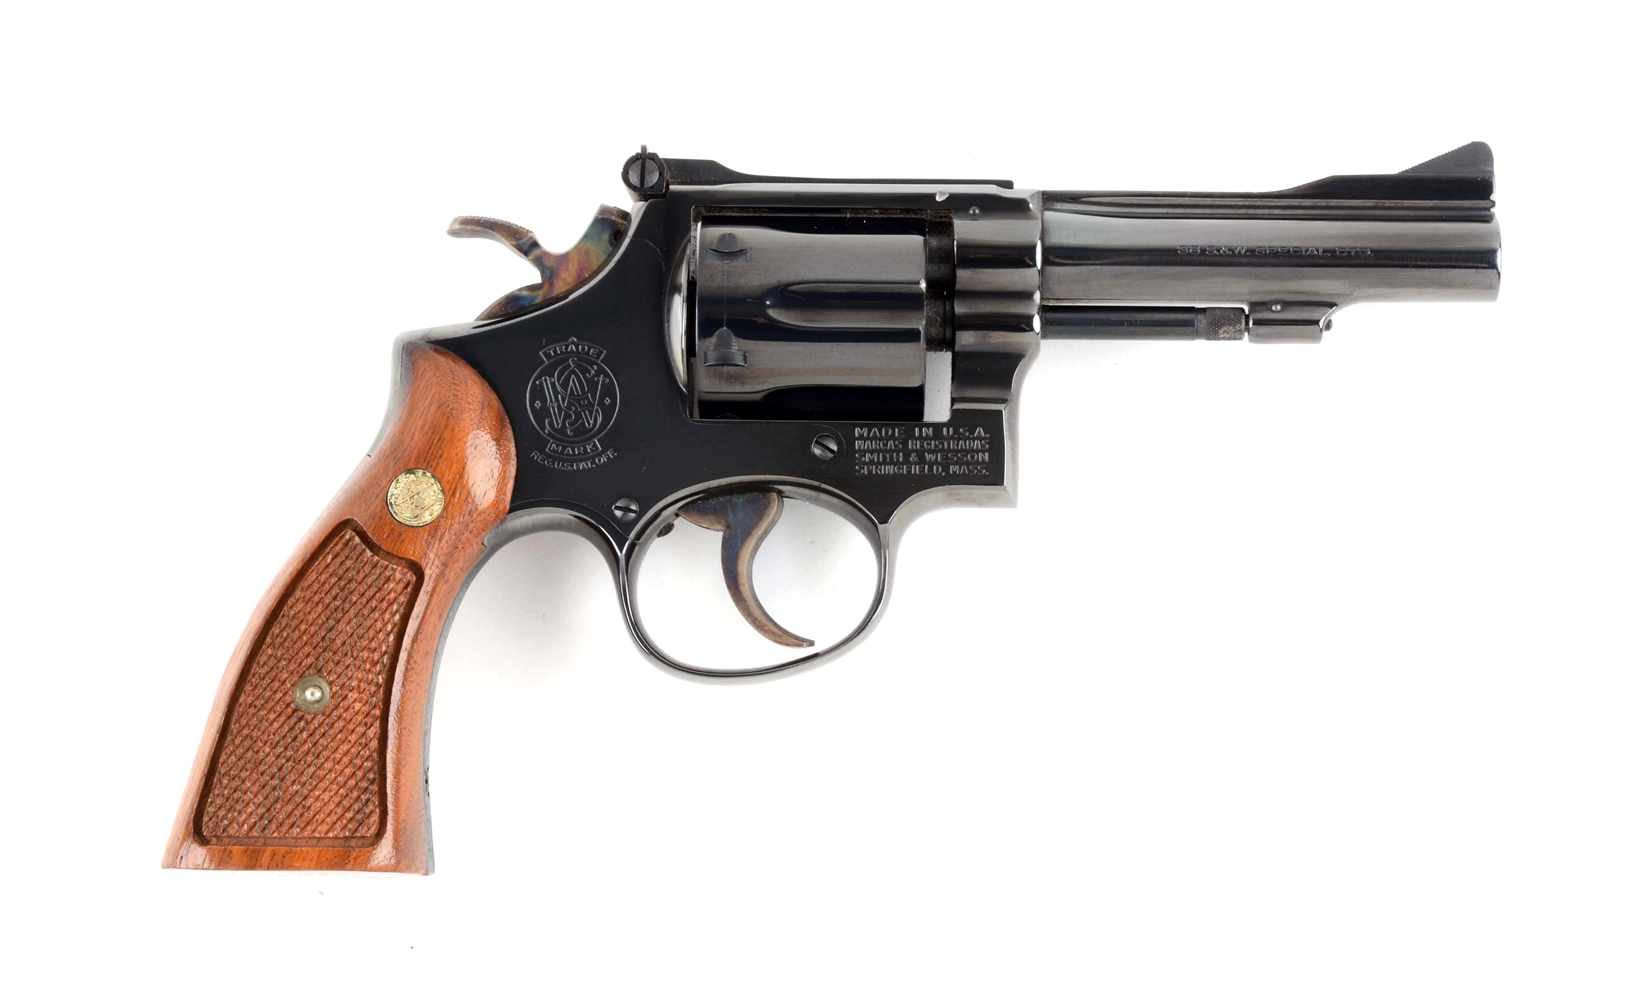 (M) S&W Model 15-3 Double Action Revolver.